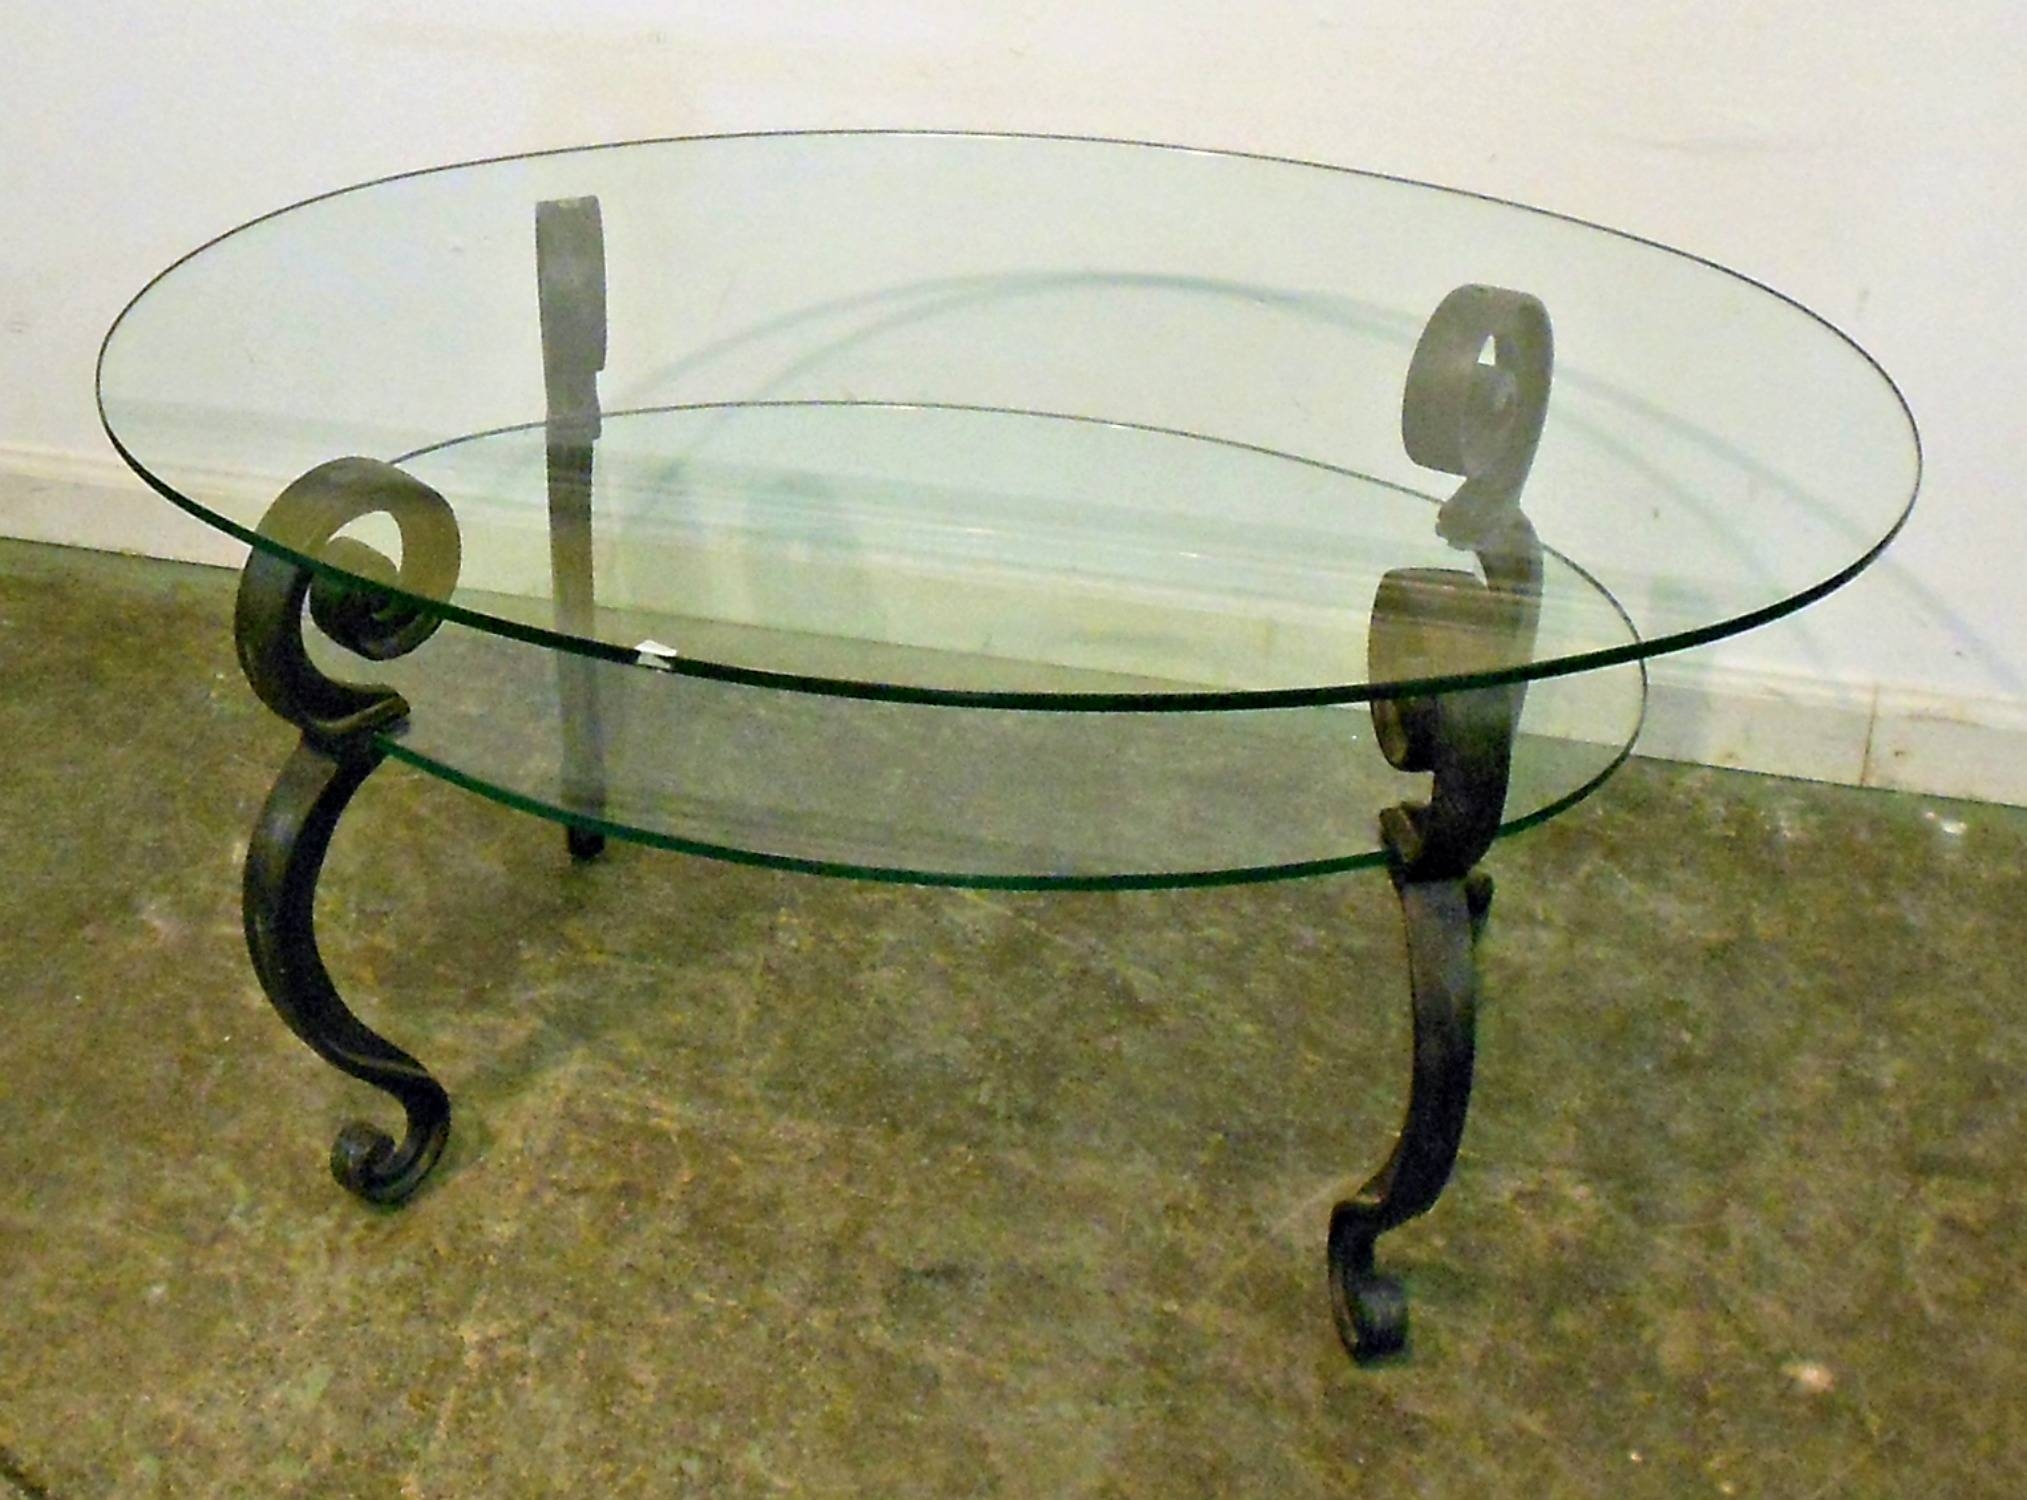 Vintage Glass Top Coffee Table With Black Metal Legs And Shelves regarding Vintage Glass Top Coffee Tables (Image 20 of 30)